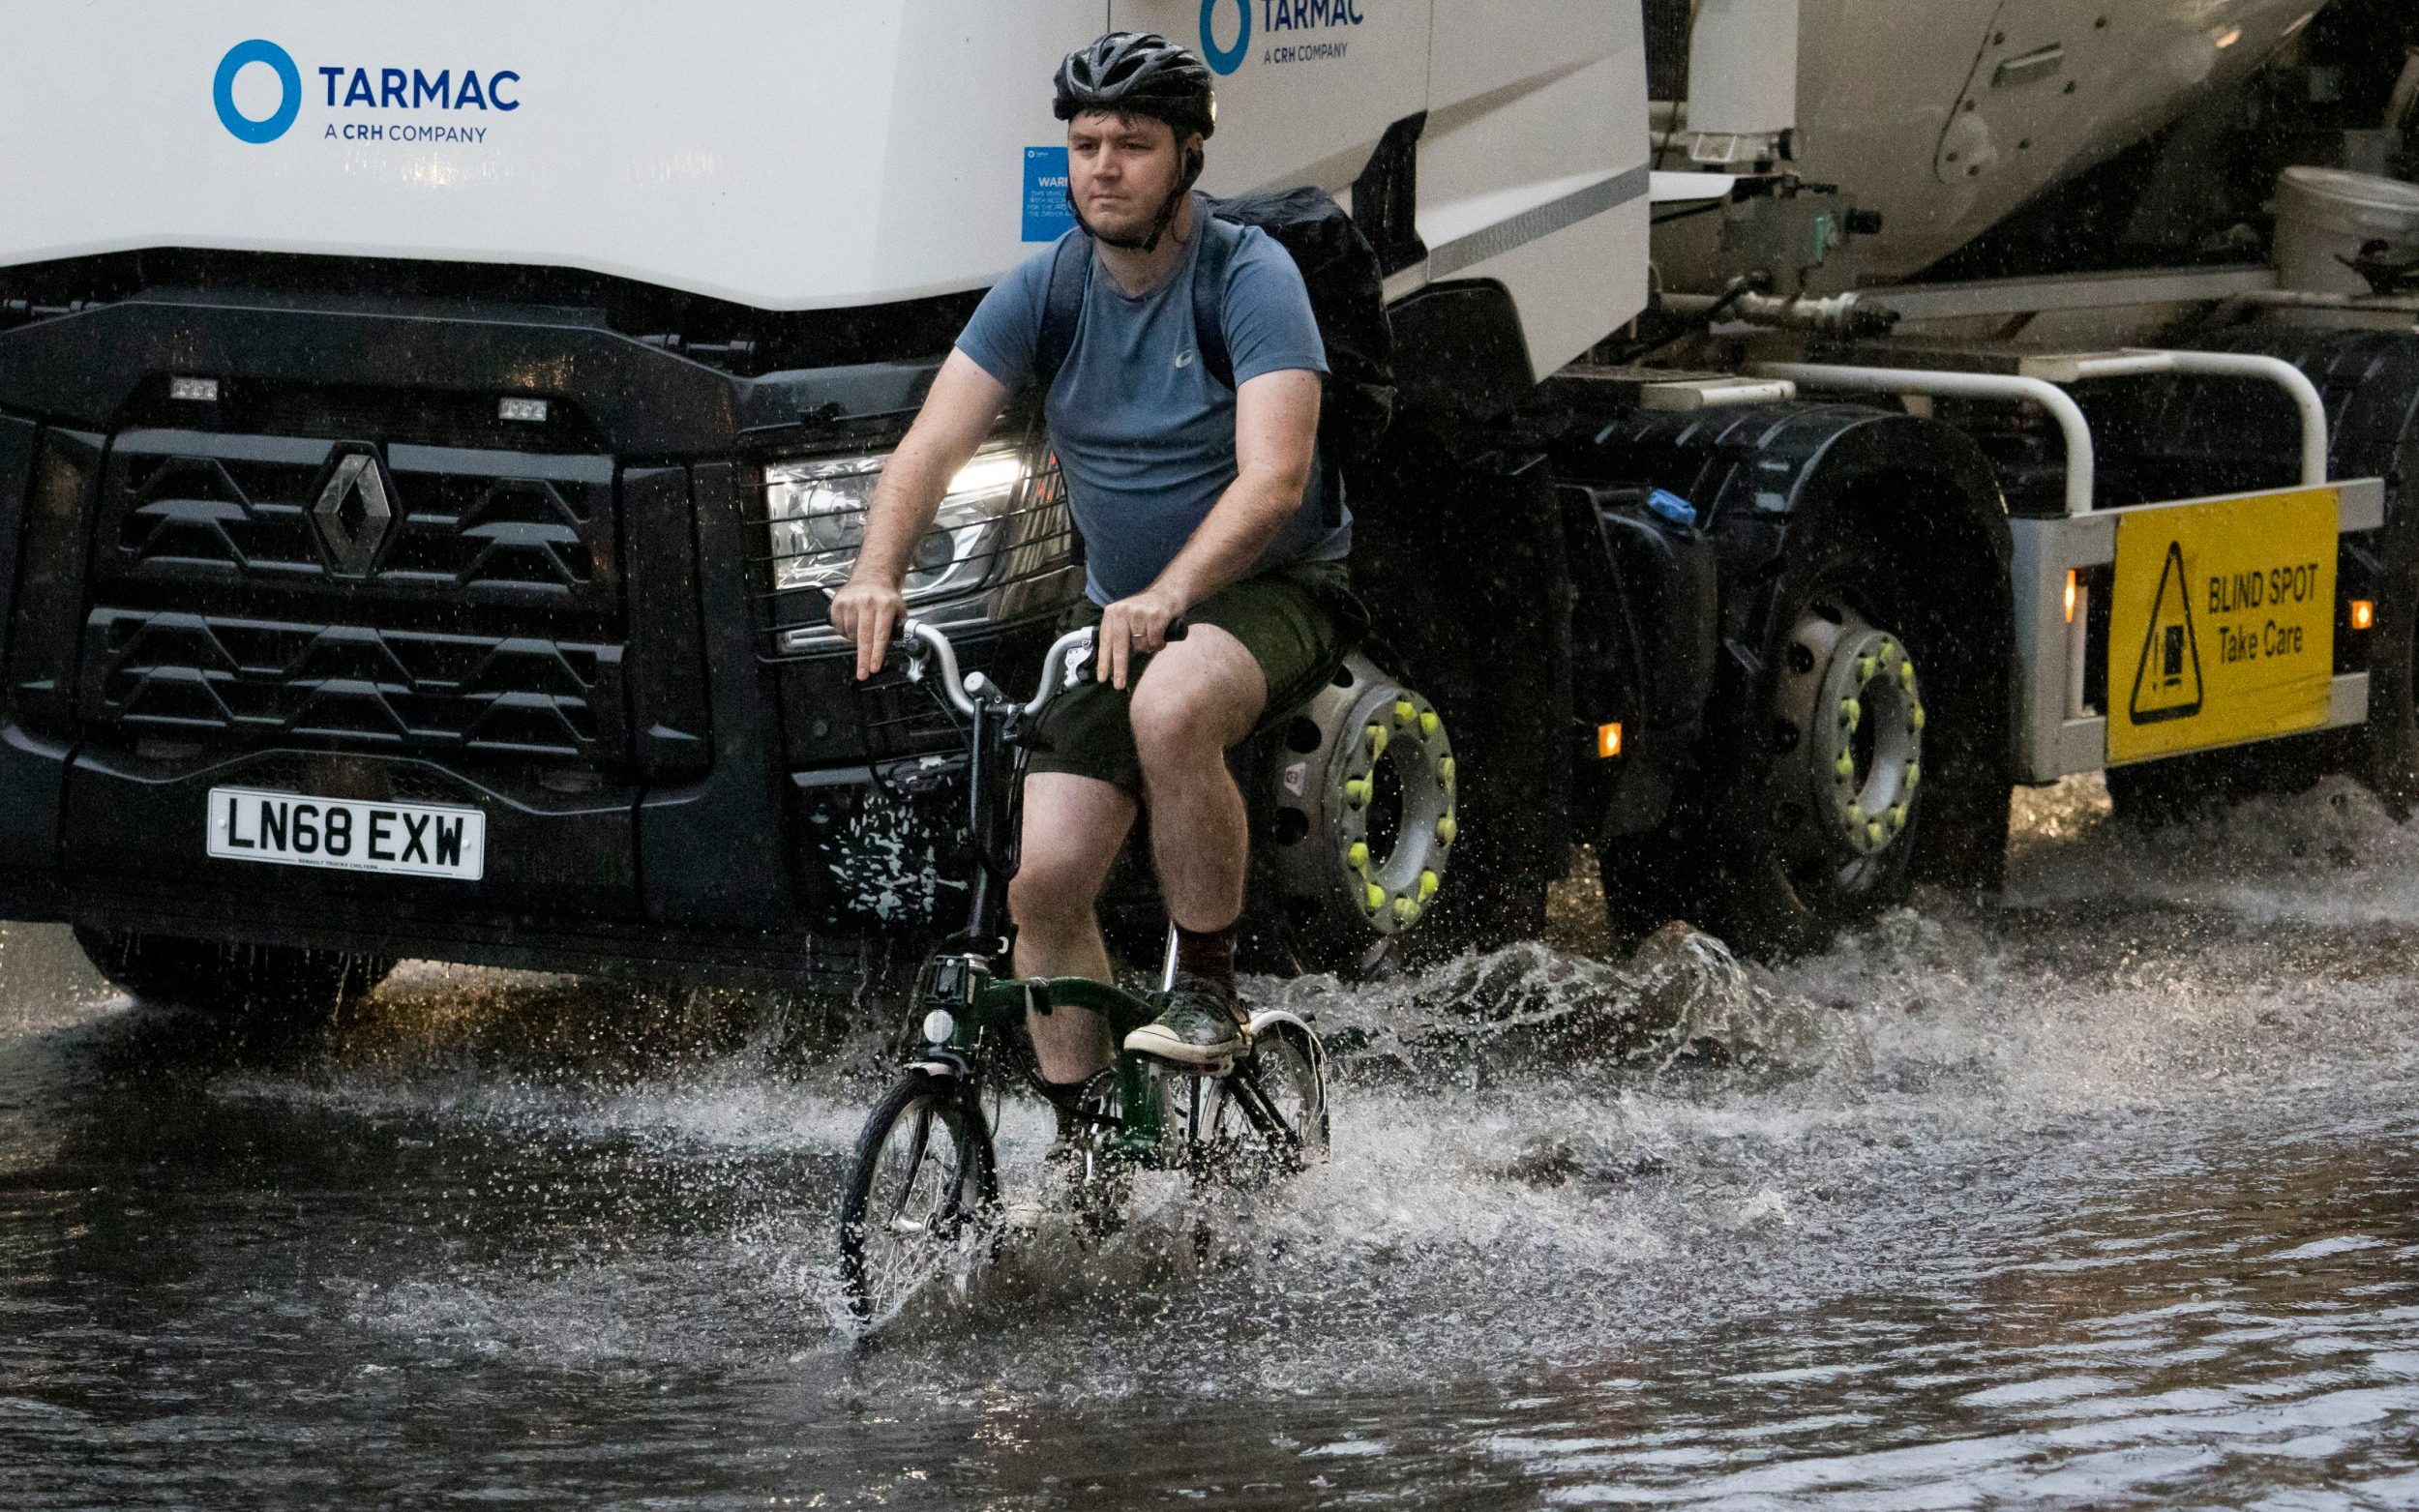 A cyclist ploughs through surface water on Euston road